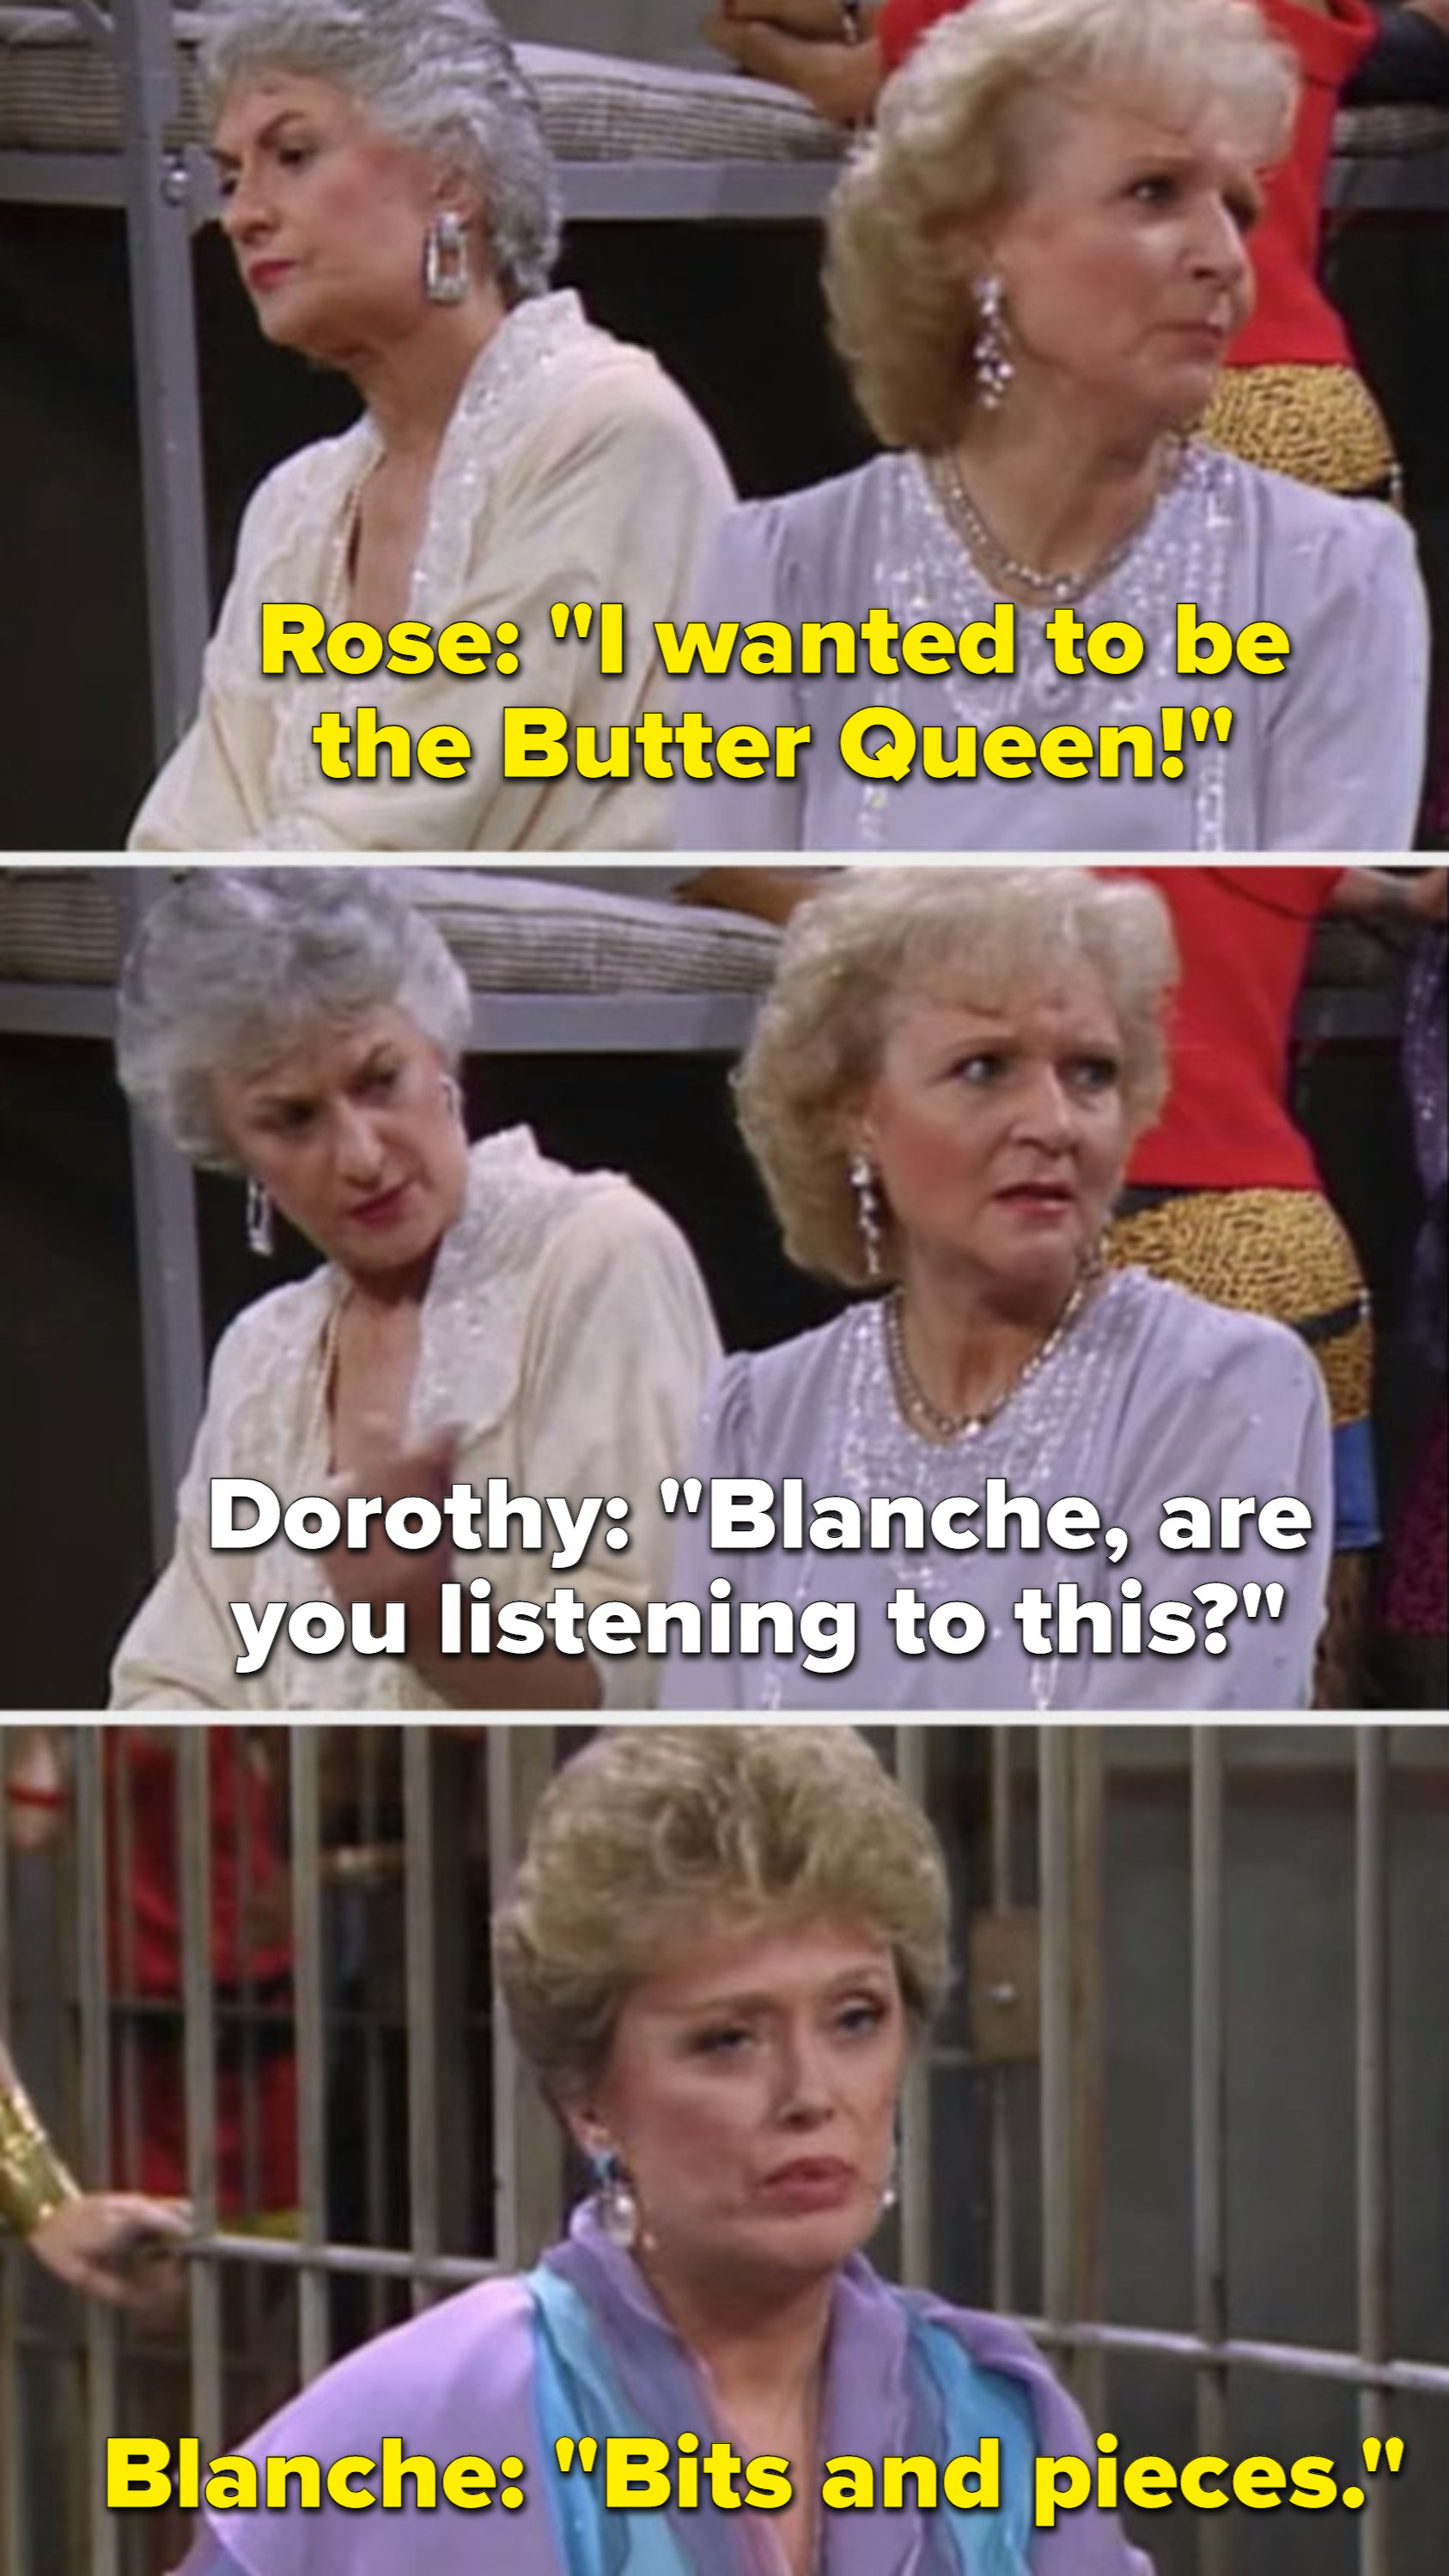 dorothy talking about how she wanted to be the butter queen back in the day and blanche only half listening to her